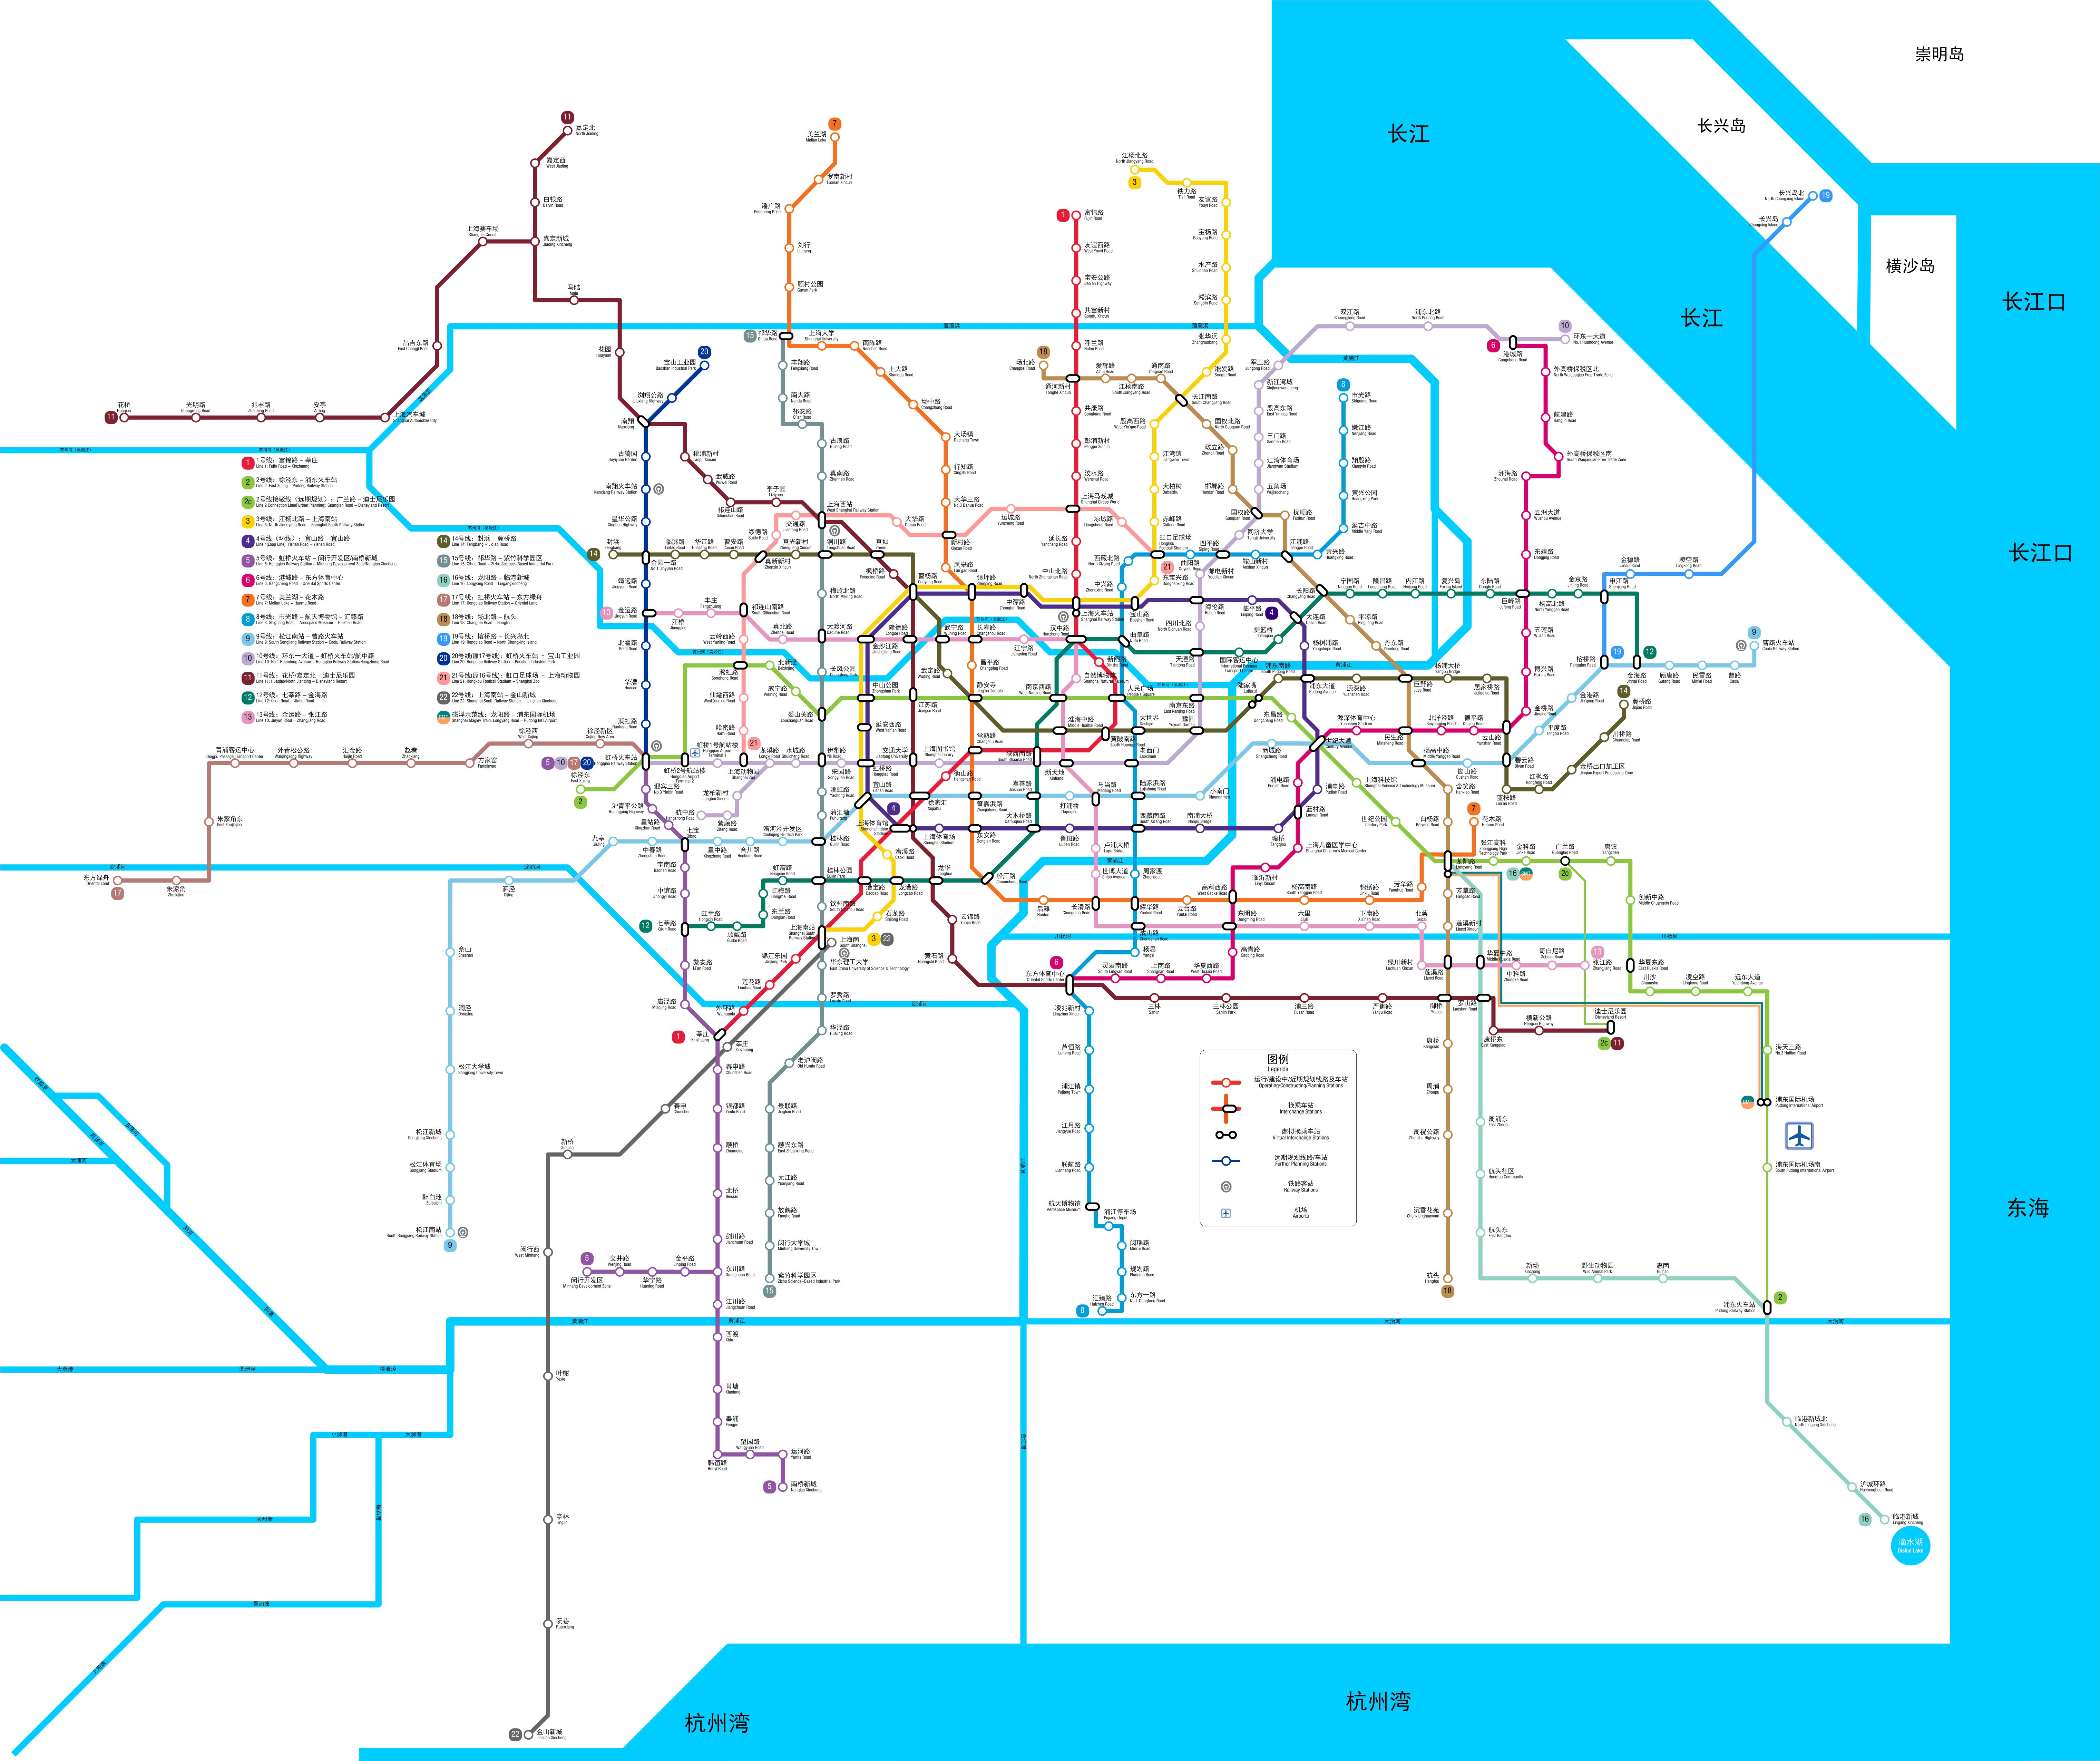 Suzhou Subway Map.Suzhou Government Releases More Concrete Plans About Linking